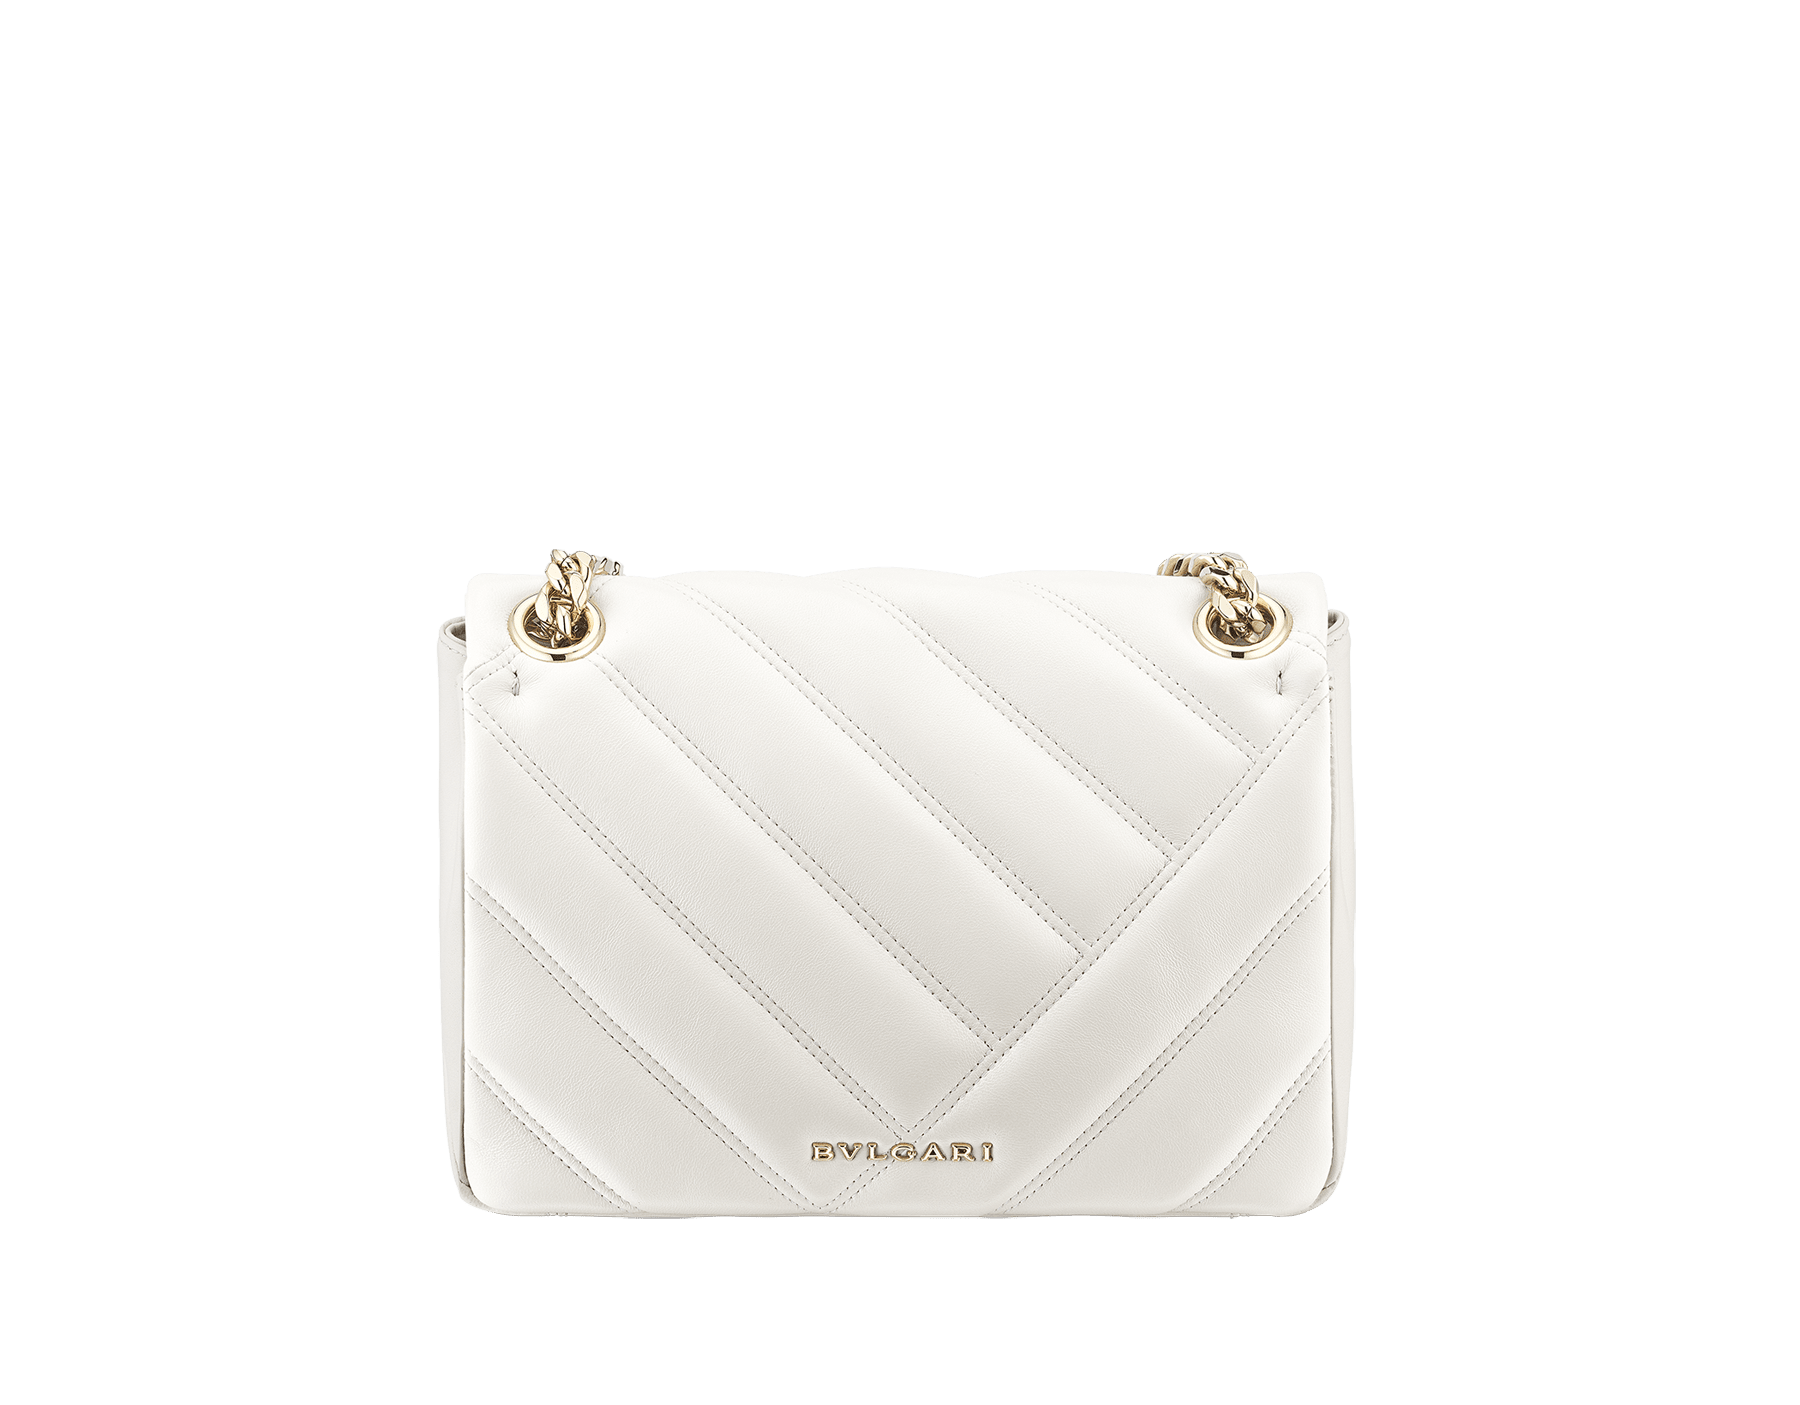 Serpenti Cabochon shoulder bag in soft matelassé white agate nappa leather with graphic motif and white agate calf leather. Snakehead closure in rose gold plated brass decorated with matte black and white enamel, and black onyx eyes. 287993 image 3